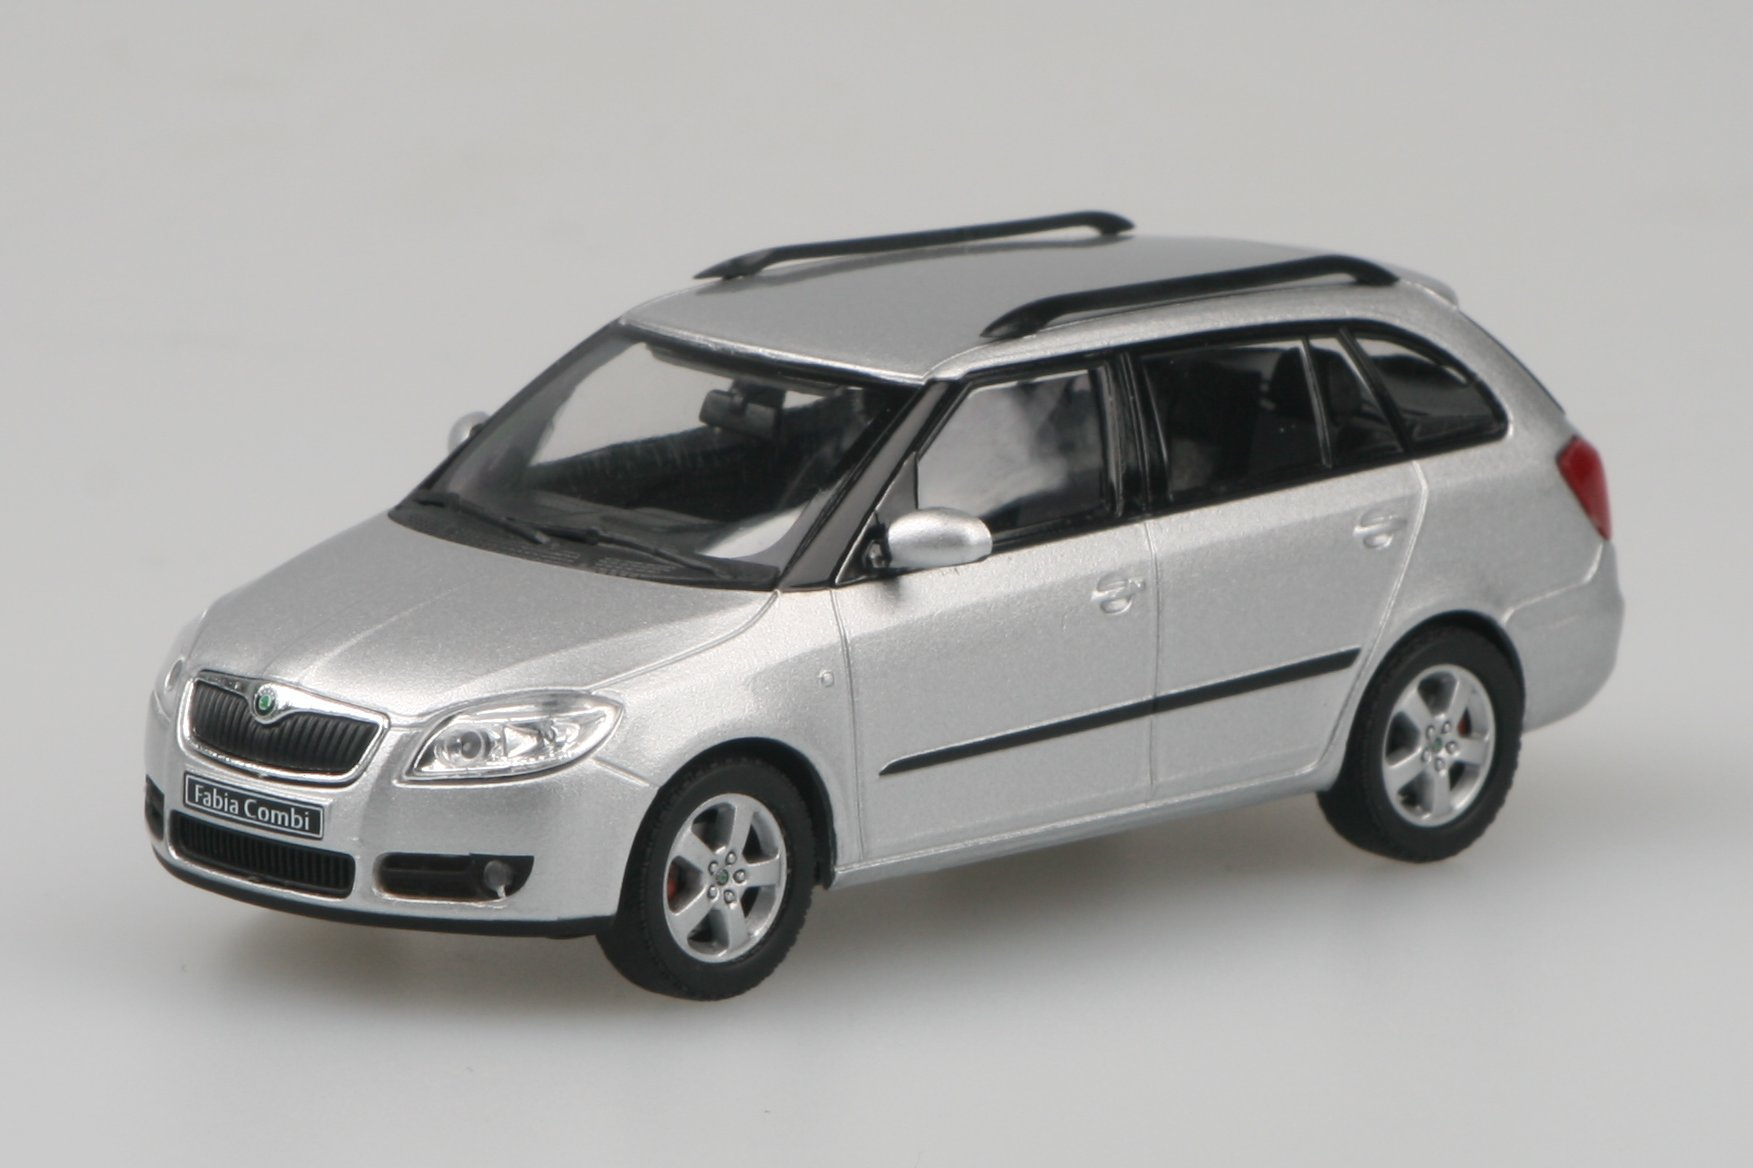 2007 skoda fabia ii pictures information and specs auto. Black Bedroom Furniture Sets. Home Design Ideas